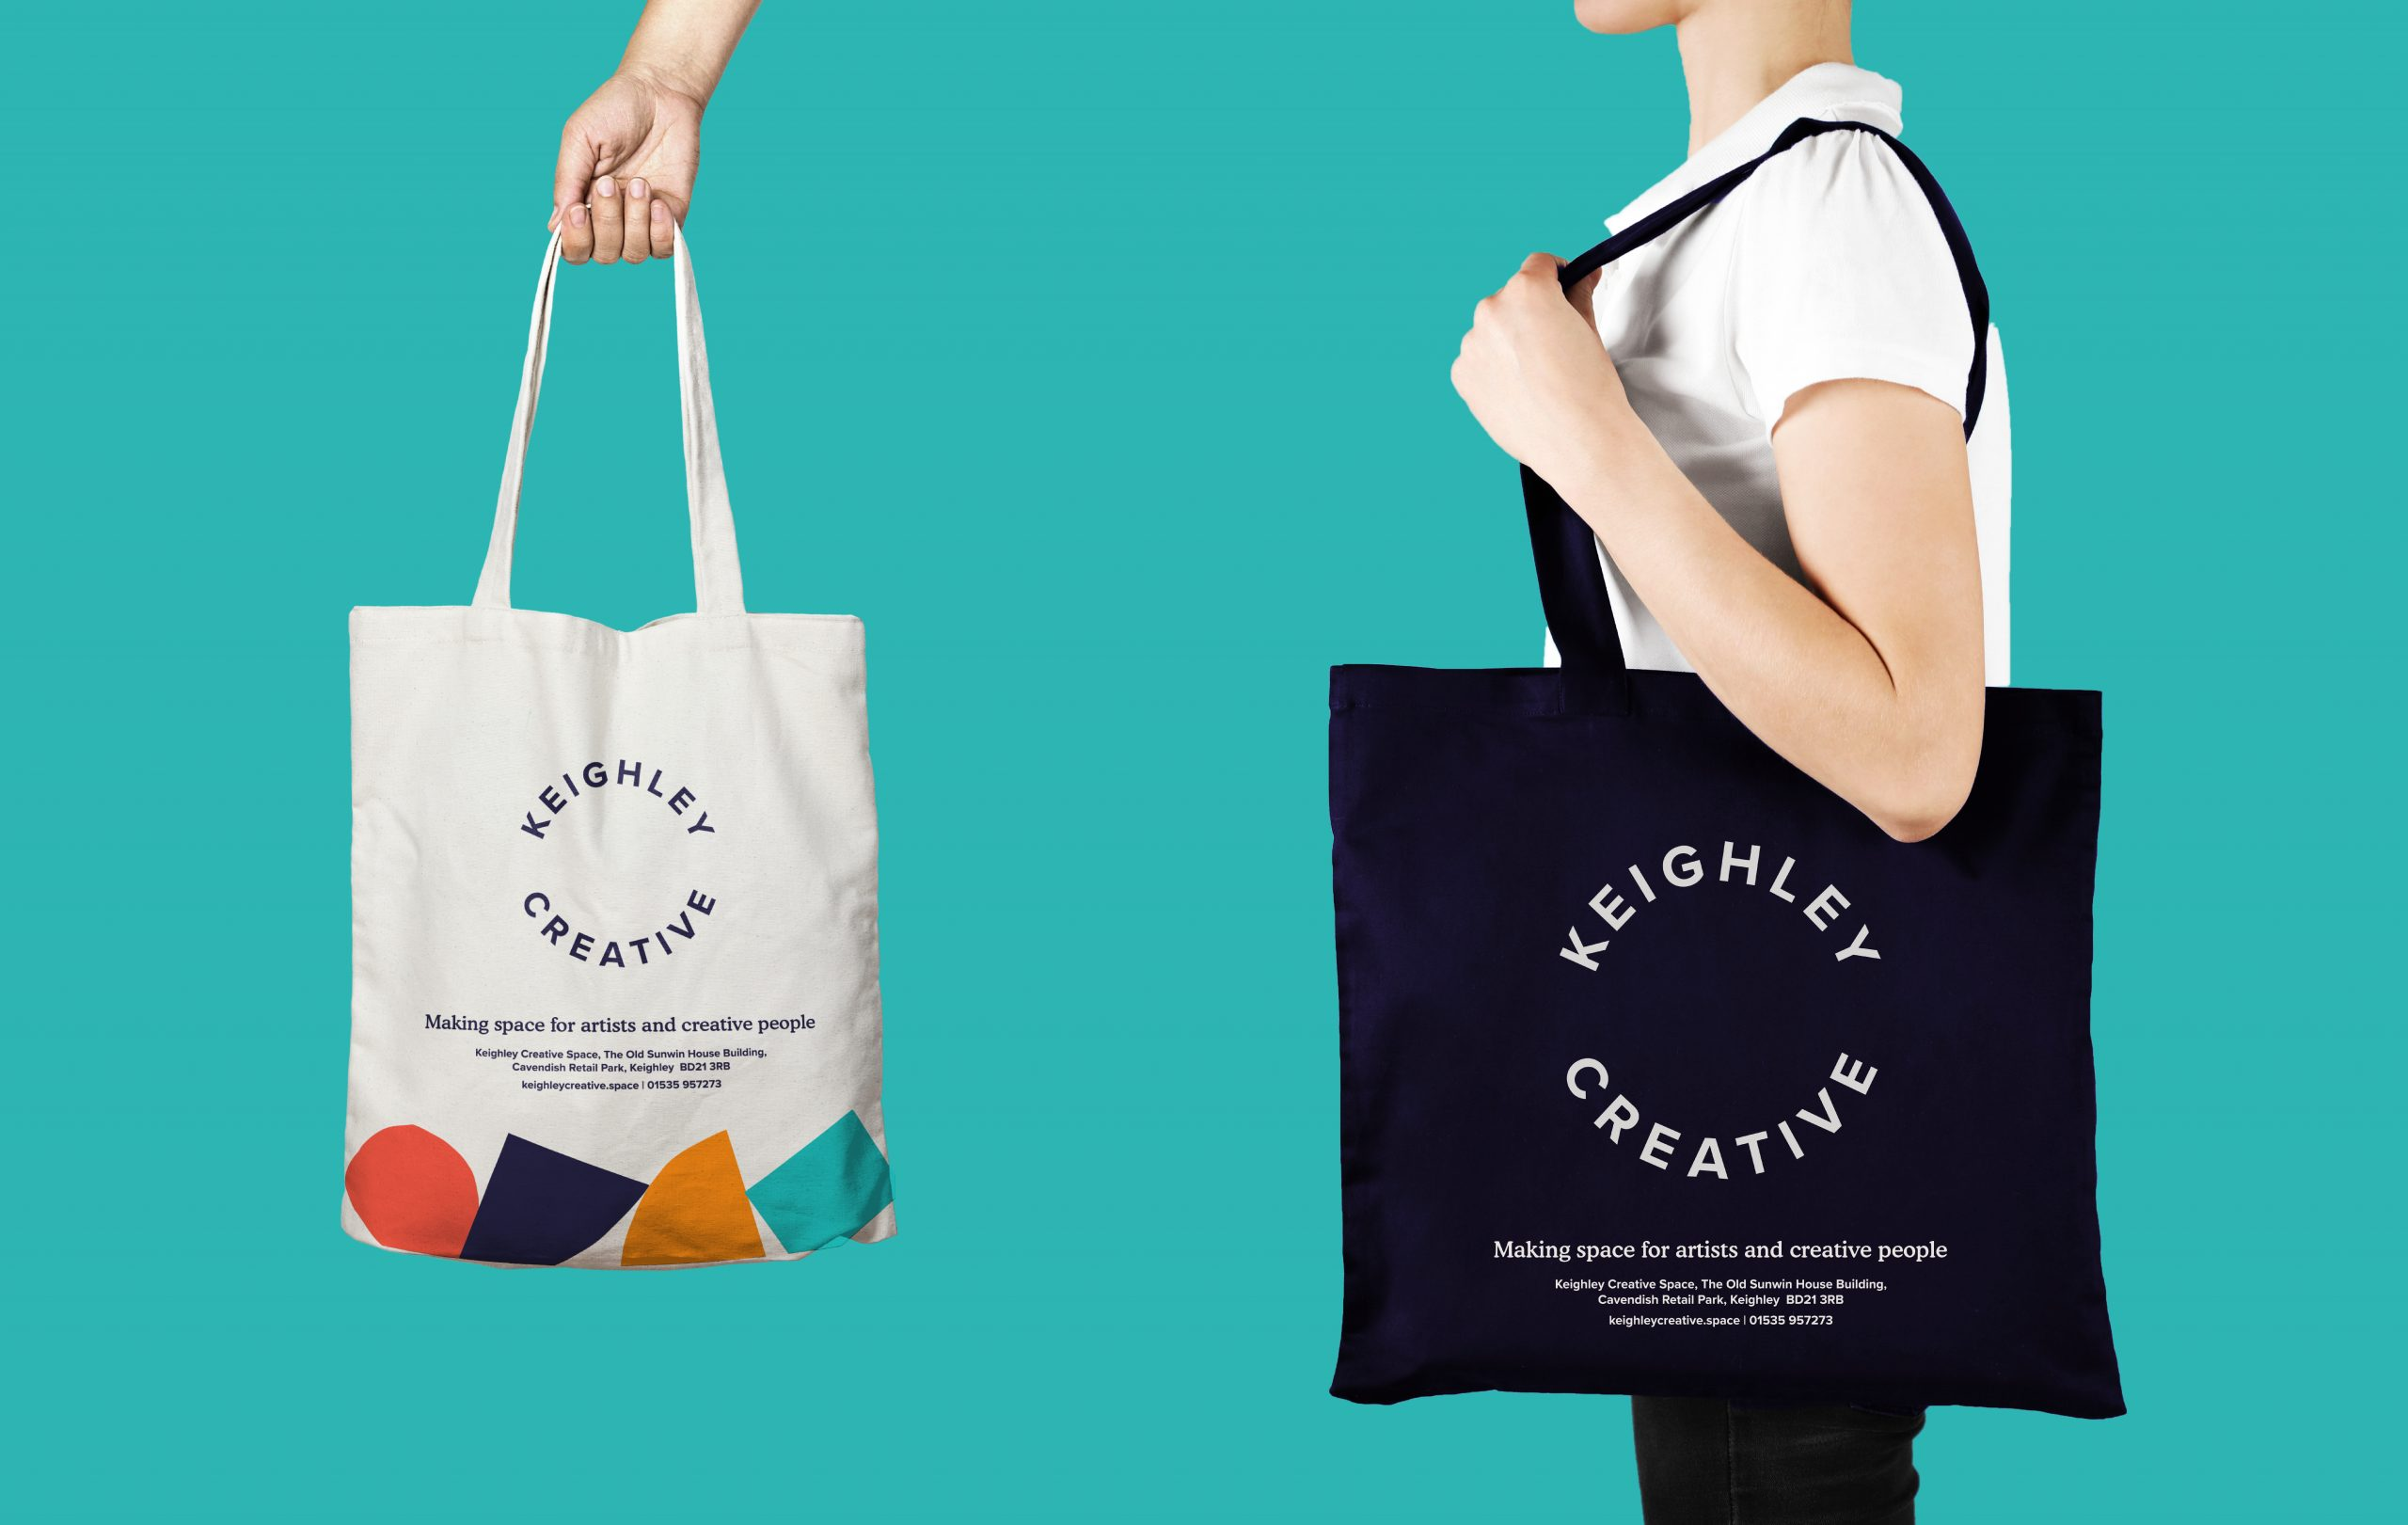 Keighley Creative - Tote bag design